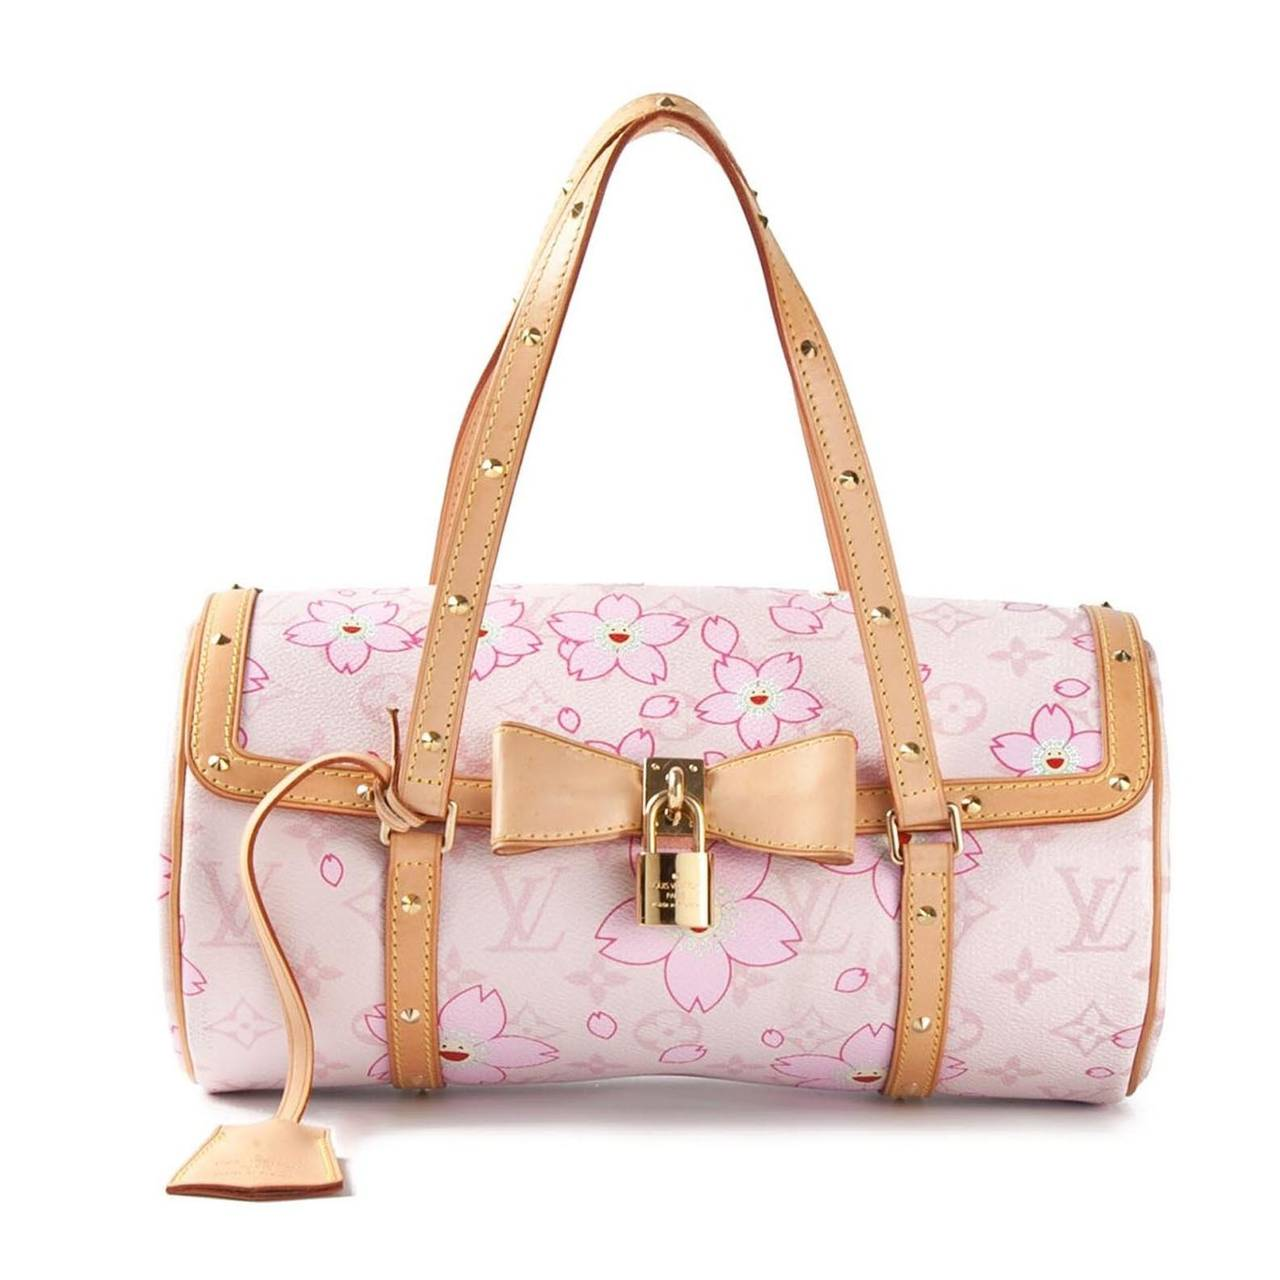 Louis vuitton cherry blossom monogram barrel bag at 1stdibs this multicoloured leather louis vuitton x takashi murakami cherry blossom monogram papillon bag features a mightylinksfo